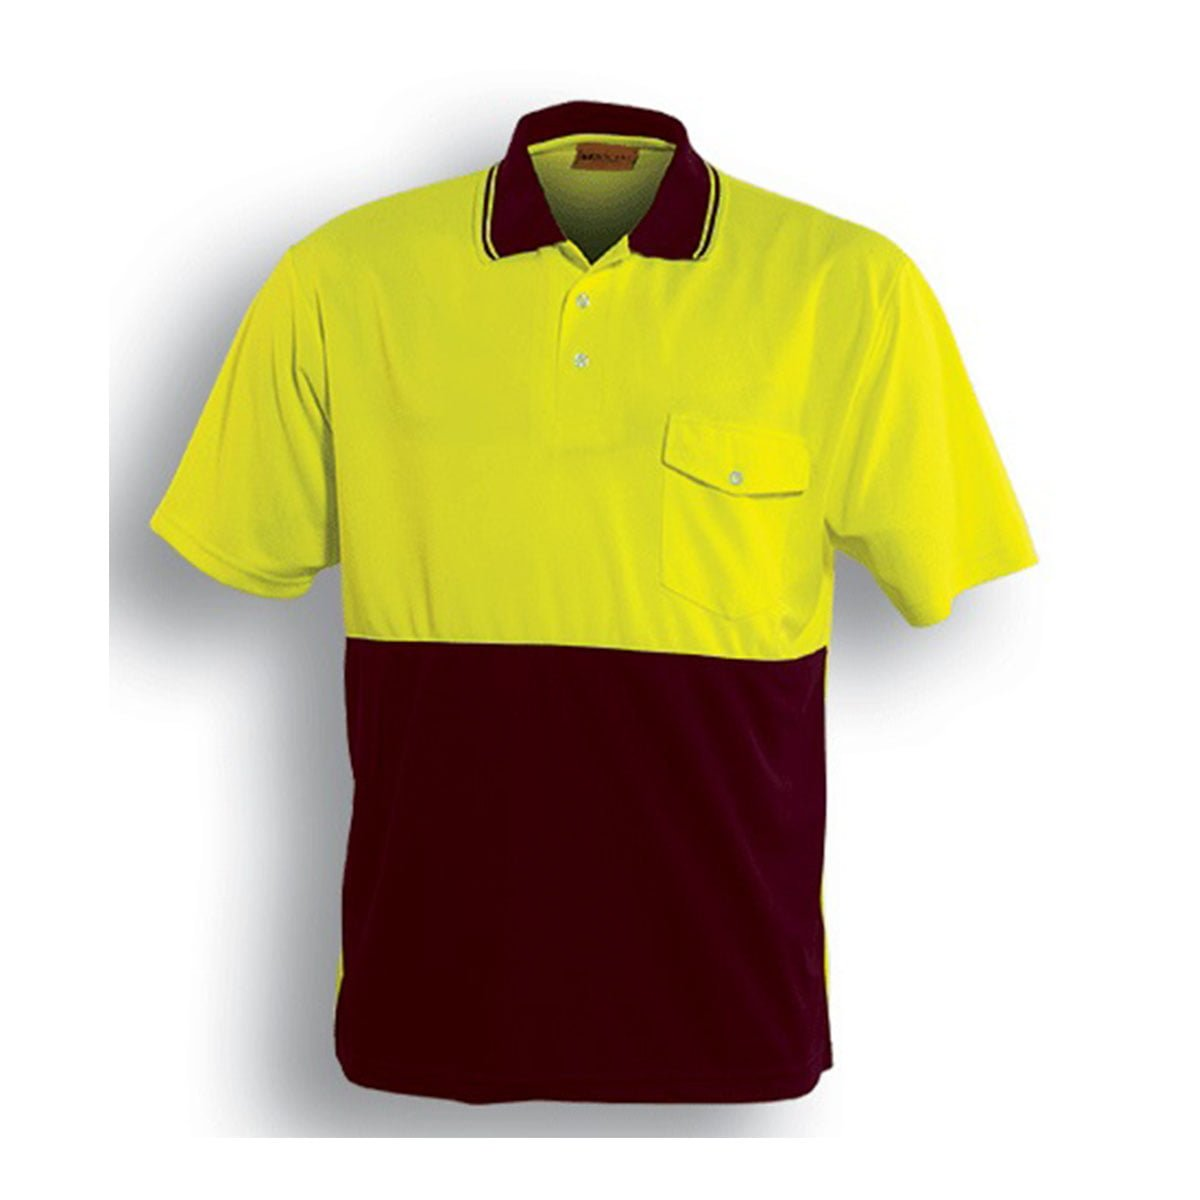 HI-VIS SAFETY POLO – SHORT SLEEVE-Lime / Maroon